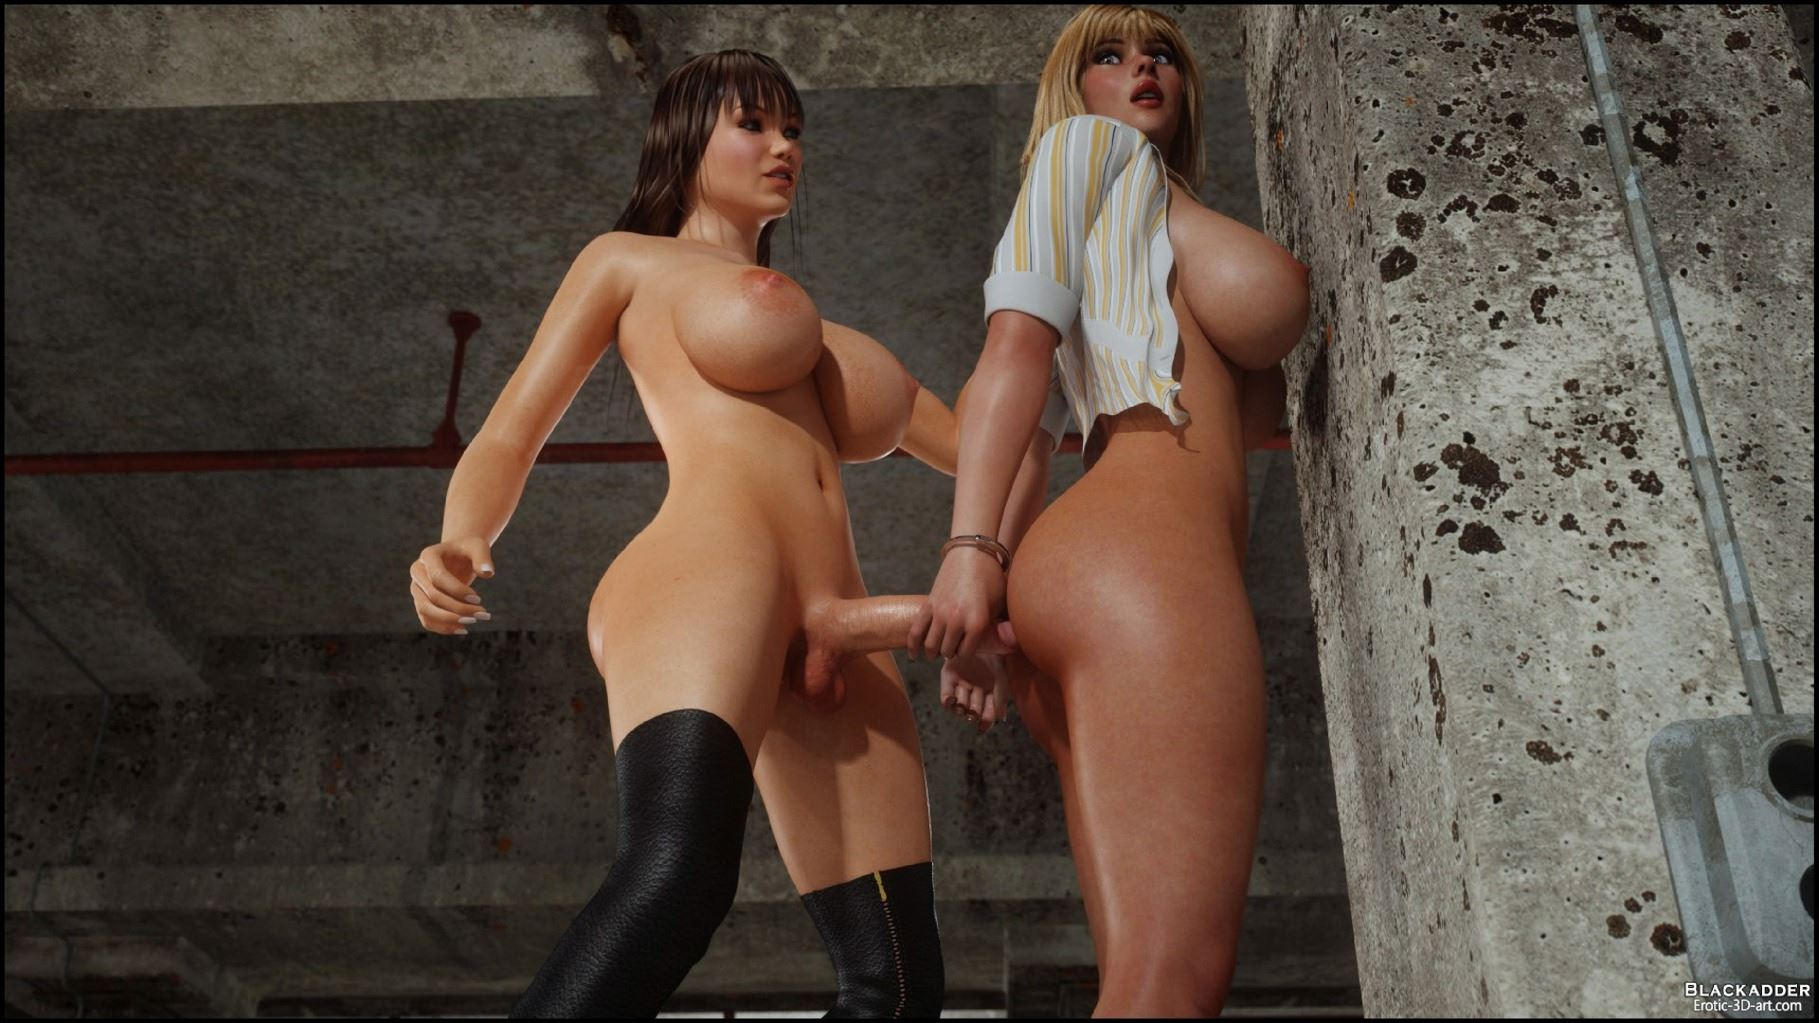 Gallery 3d shemale ero smut movies